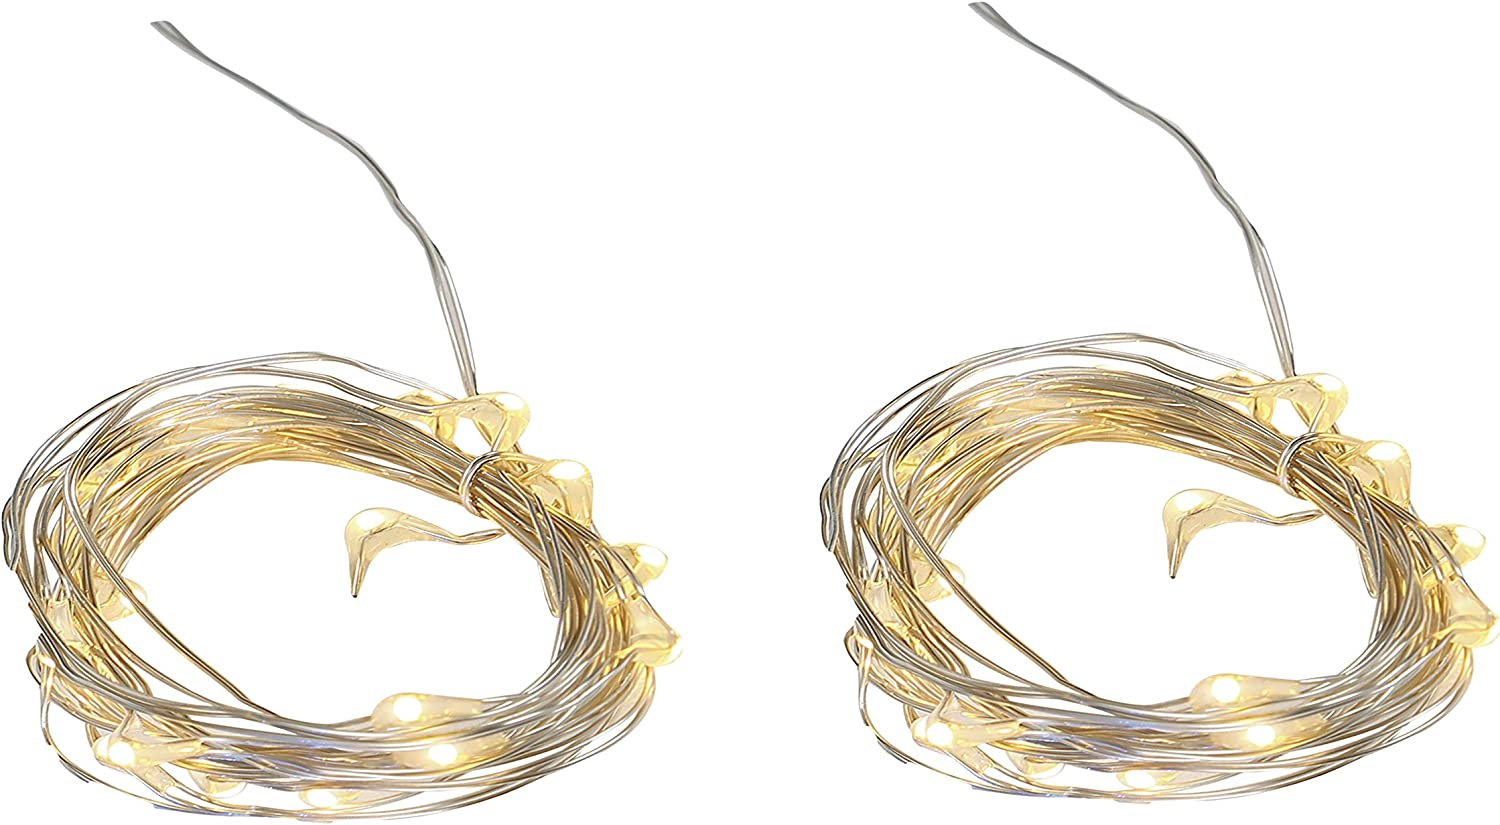 Twinkle Fairy String Lights Strands With 20 LEDs,Timer, Battery operated For Easter, Garden, Home, Wedding, Party, Christmas Decoration(Set of 2) (Warm White)